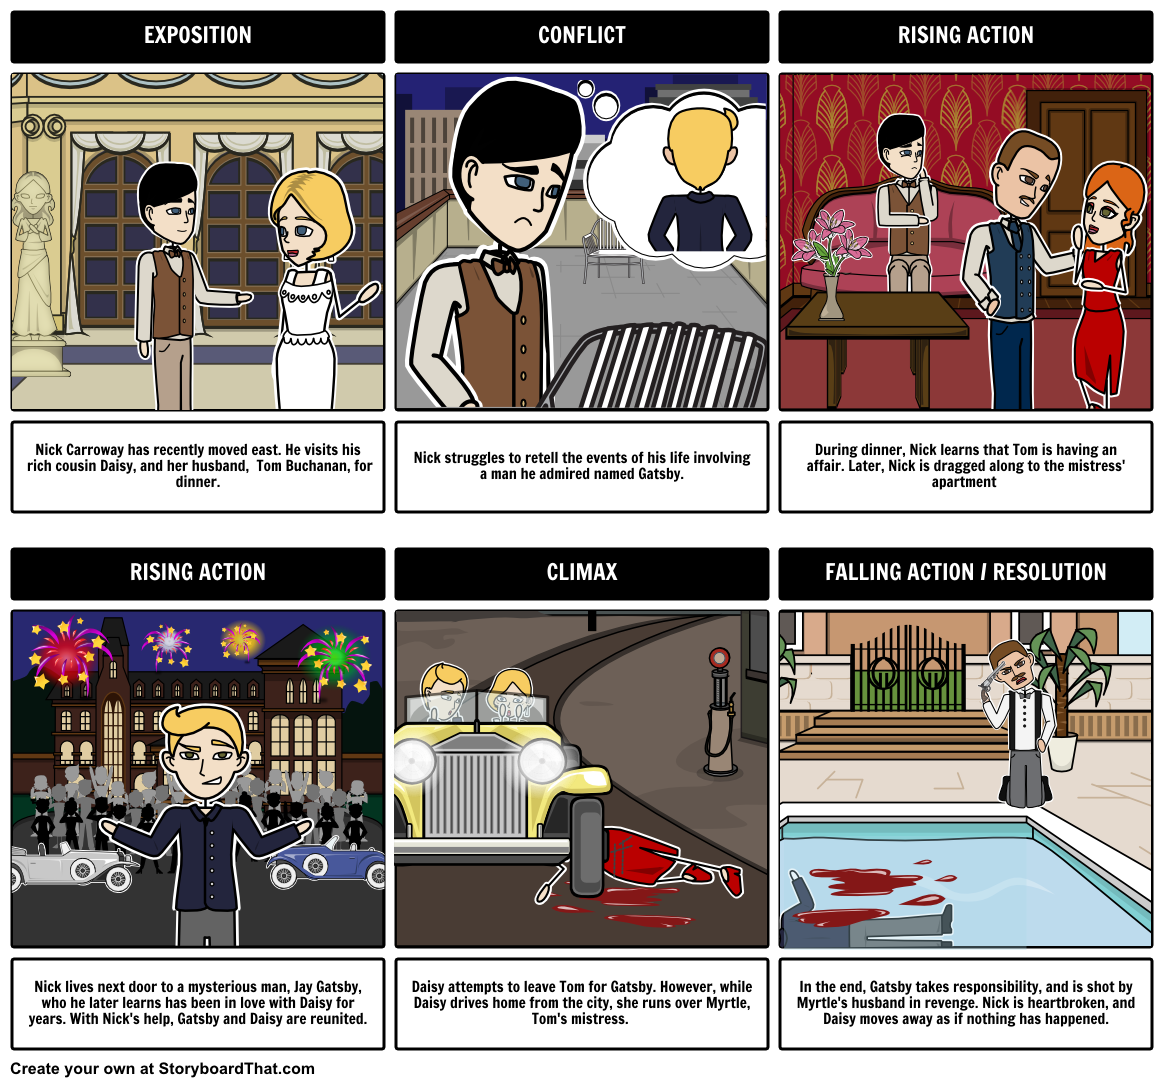 the great gatsby plot diagram make a picturesque plot diagram engaging student activities for the great gatsby include the great gatsby theme the great gatsby characters literary conflict and jay gatsby as an